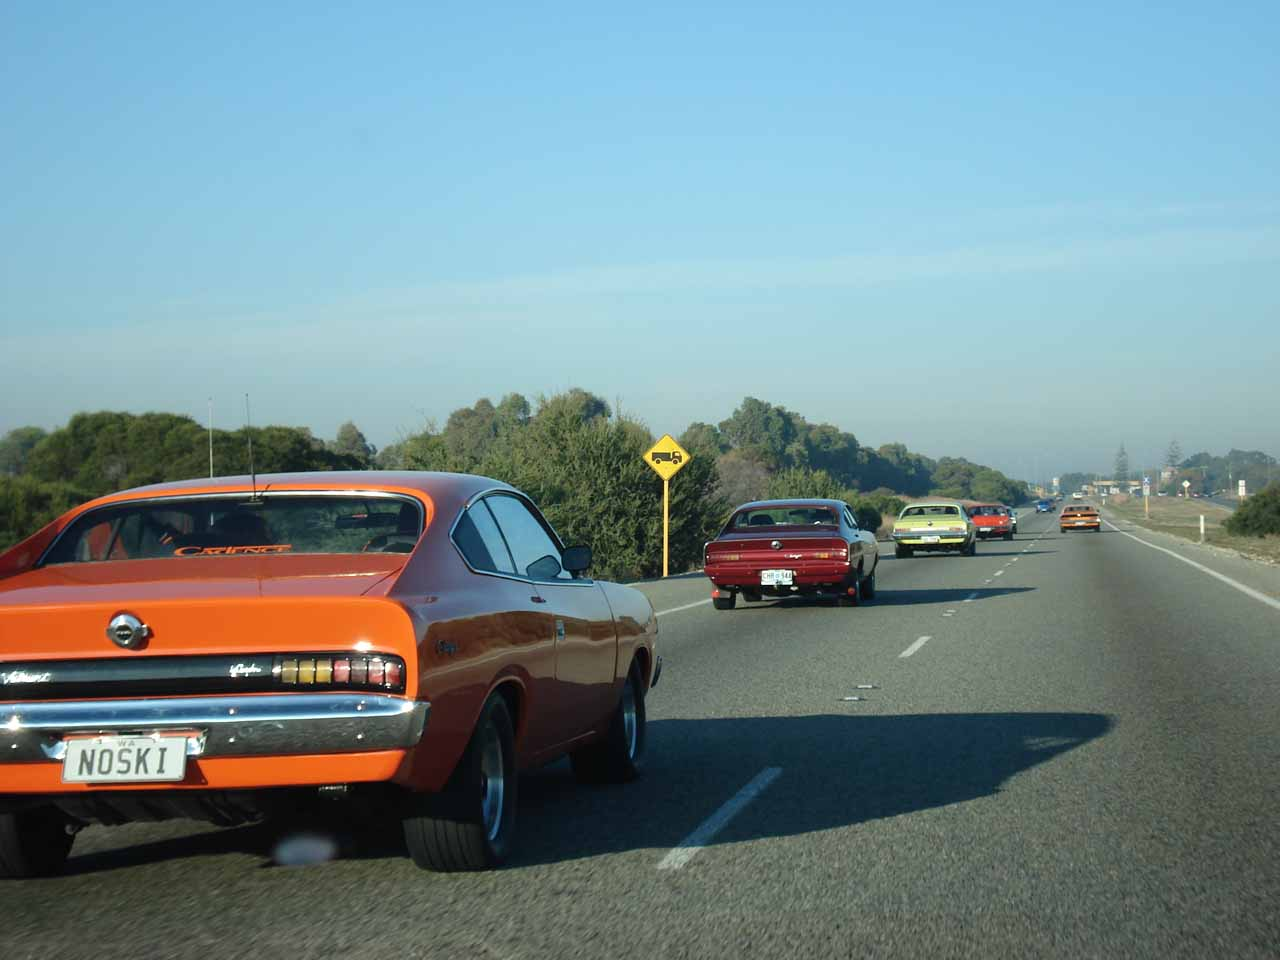 Passing by the group of Dukes of Hazard cars